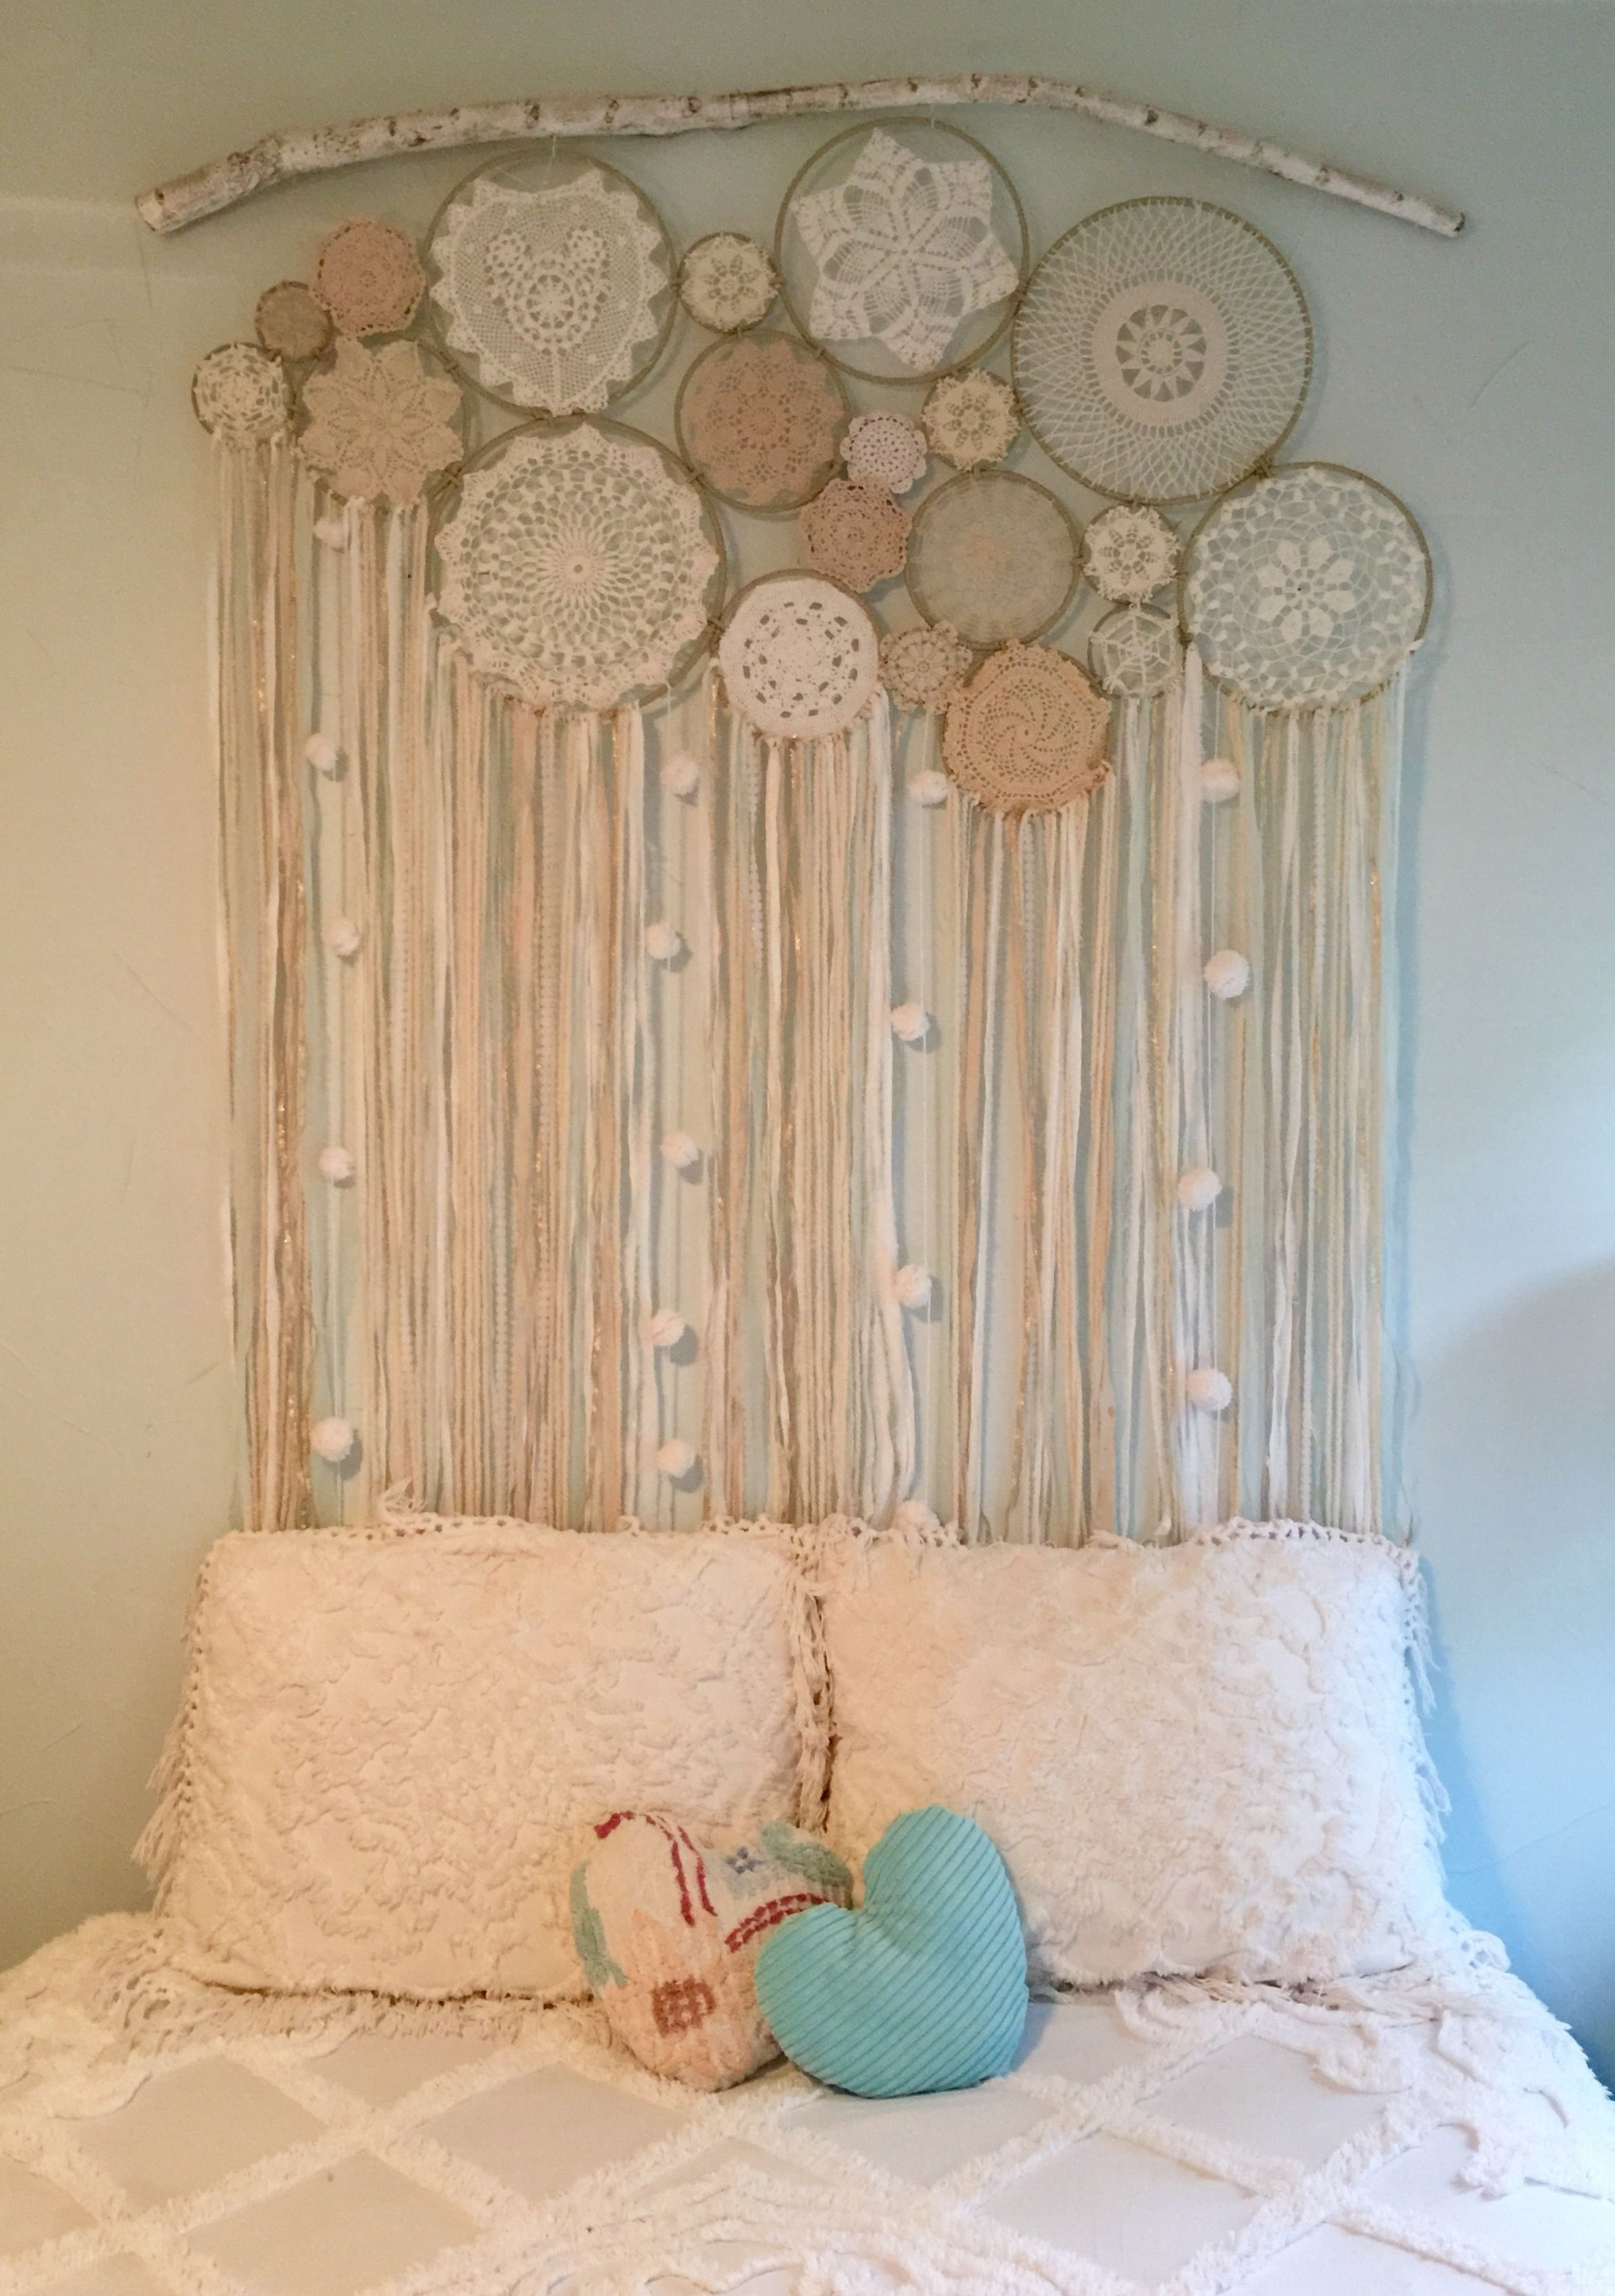 Custom Made Dreamcatcher Wall Hanging. Hand Wrapped Metal Rings Within Most Recently Released Dreamcatcher Fabric Wall Art (Gallery 4 of 15)